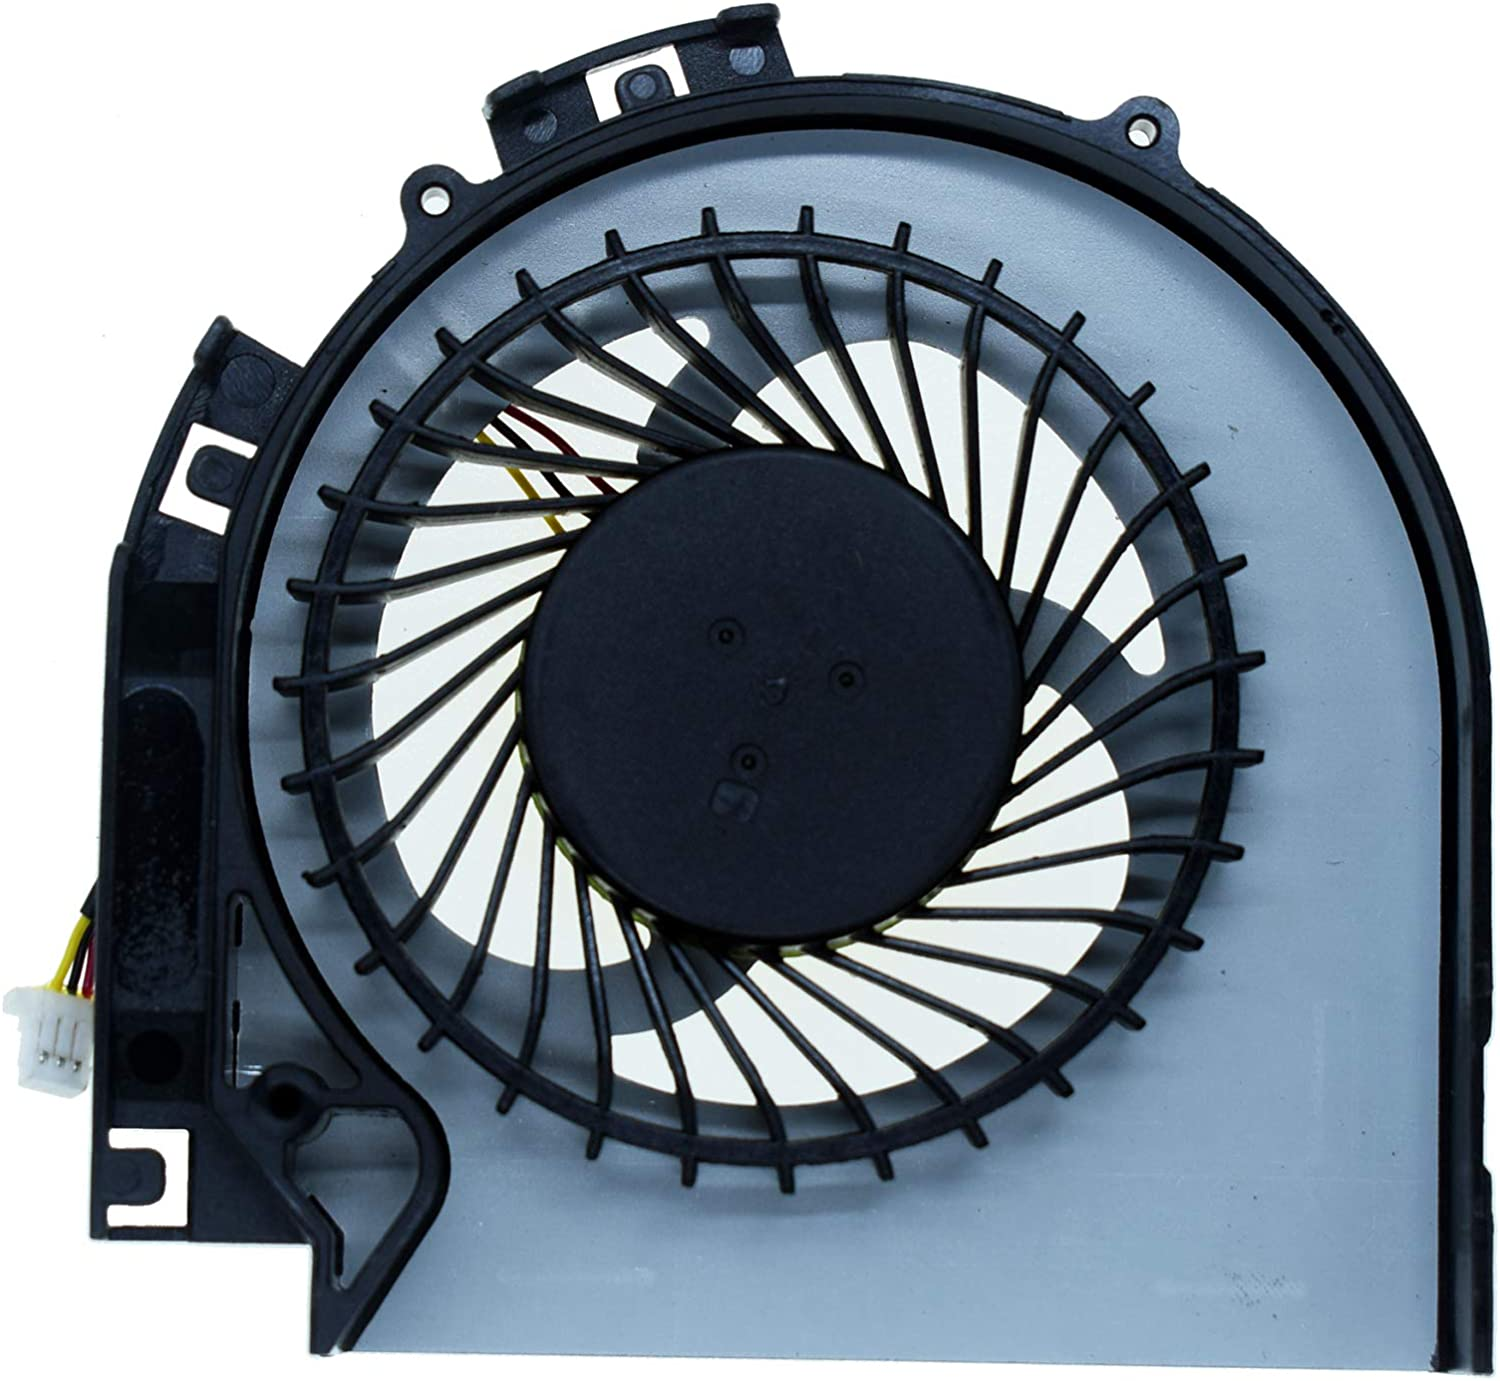 DREZUR CPU Cooling Fan Compatible for Dell Inspiron 17 7000 7737 7746 17-7737 17R (7737) Series Laptop Cooler 0NHP25 CN77304